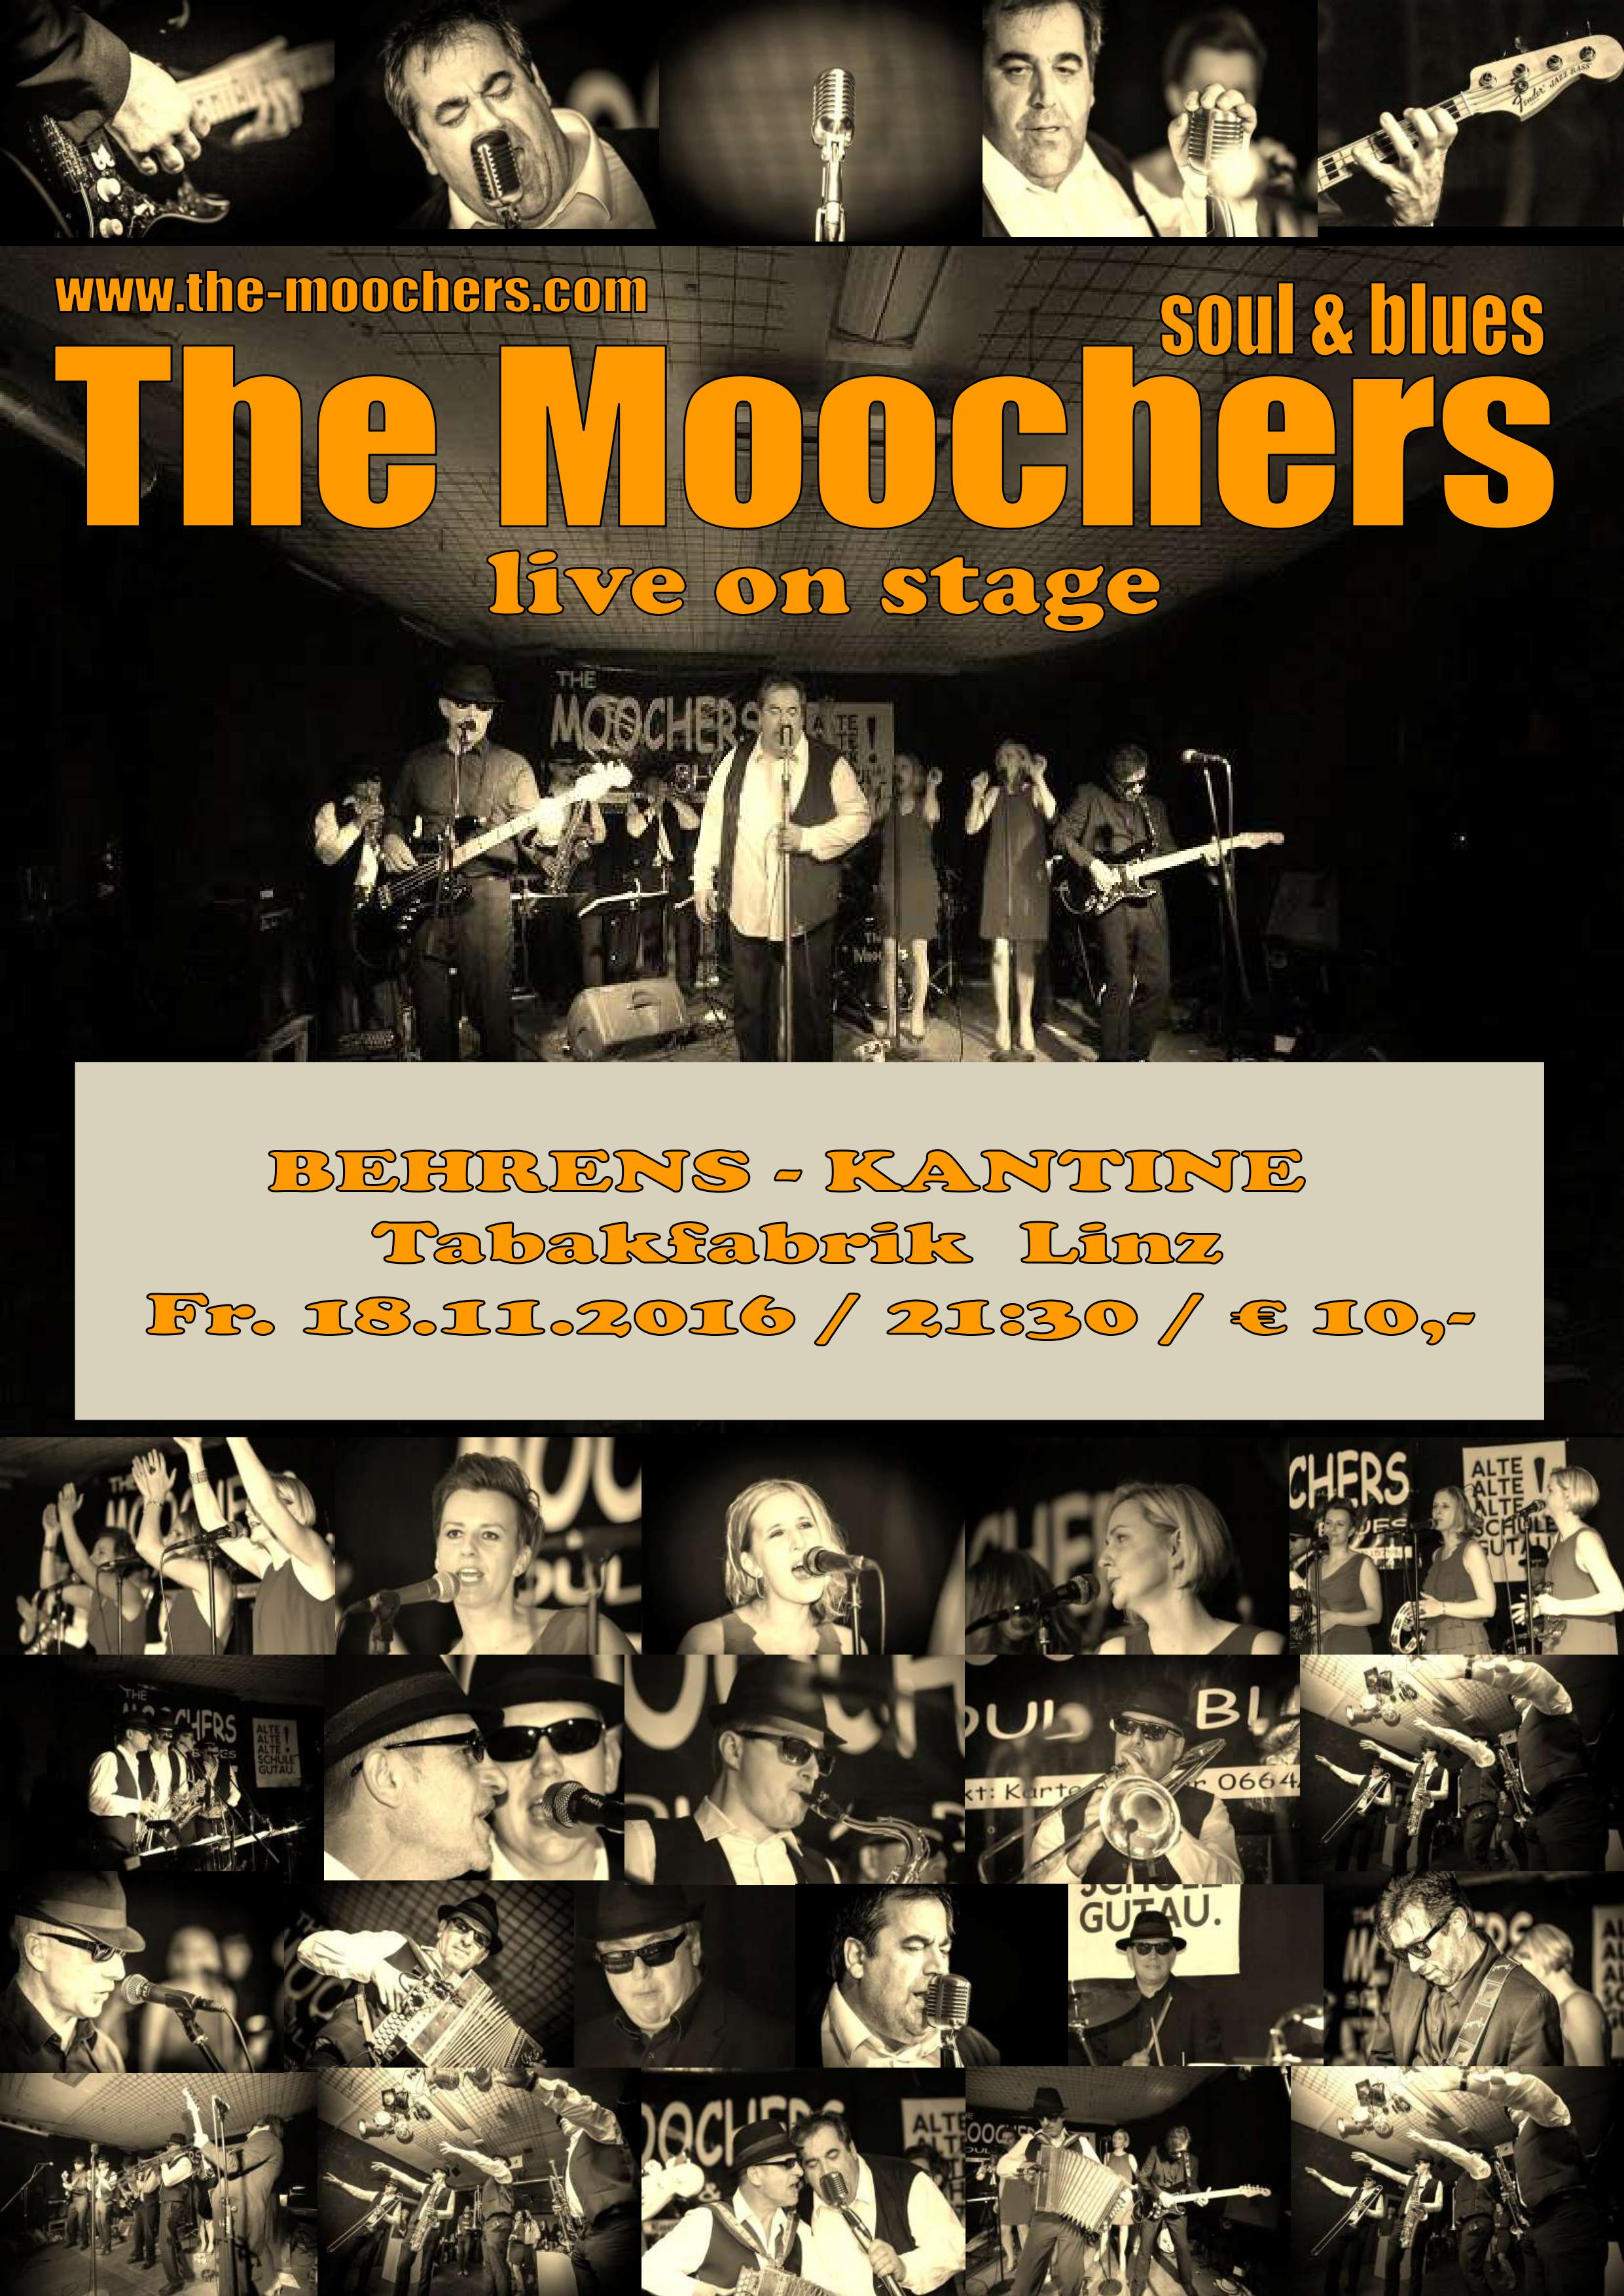 the-moochers-20161118